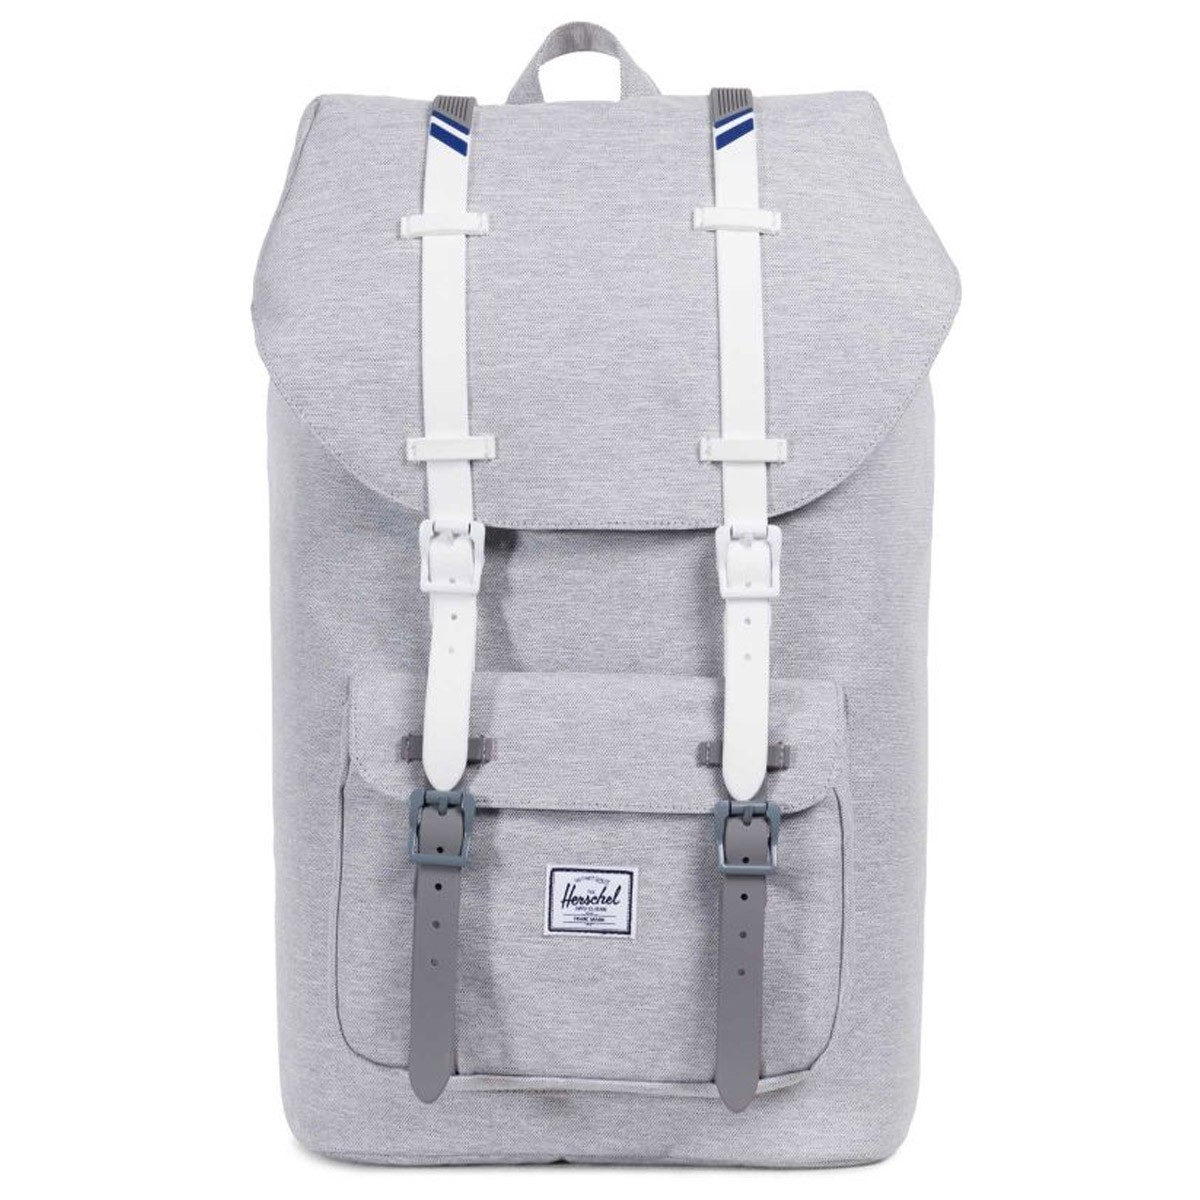 b348f0b60ff5 Herschel Little America Backpack - Light Grey Crosshatch White ...